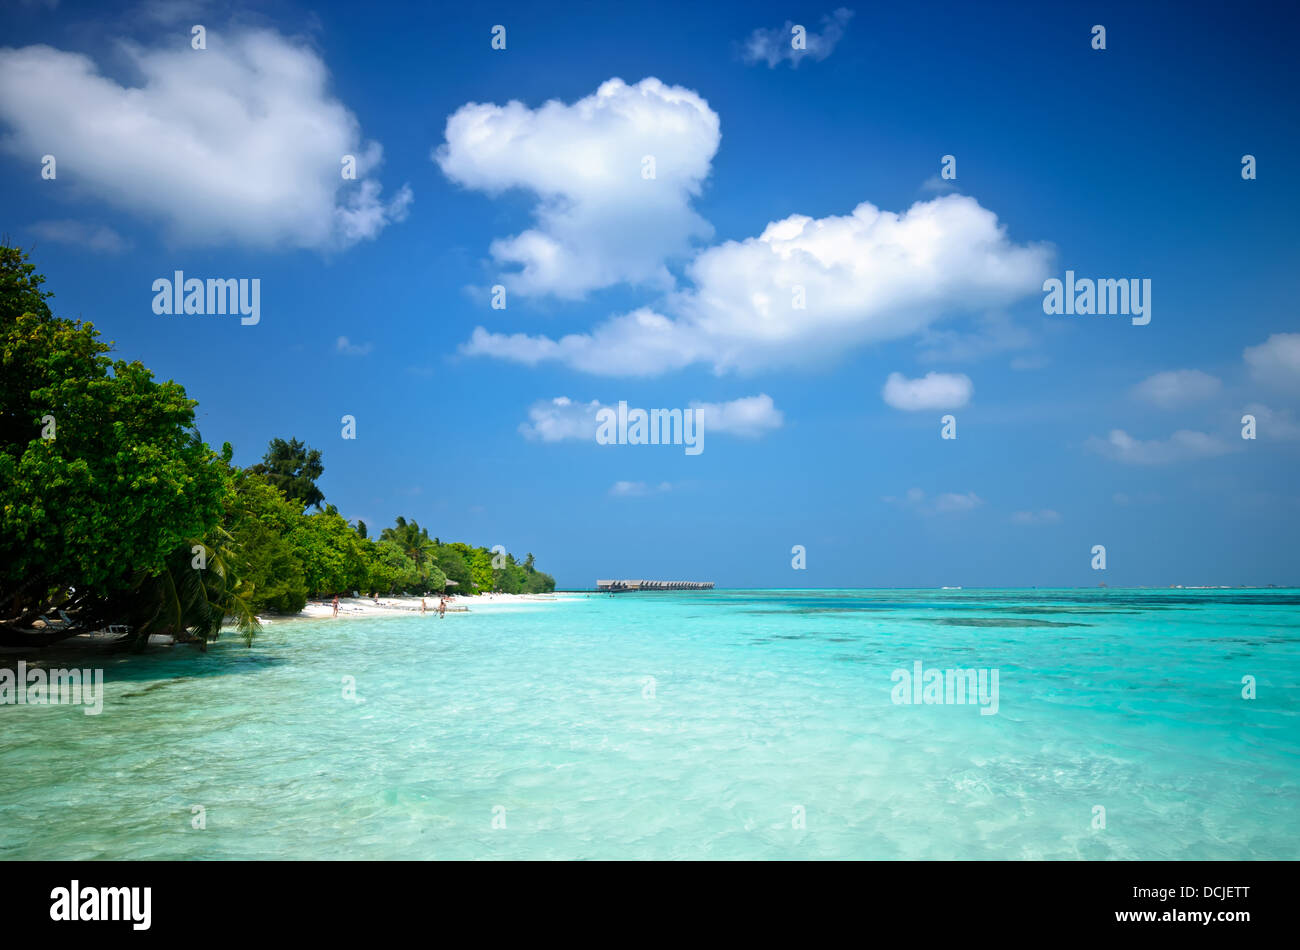 sandy beach and clear blue water of the maledives - Stock Image